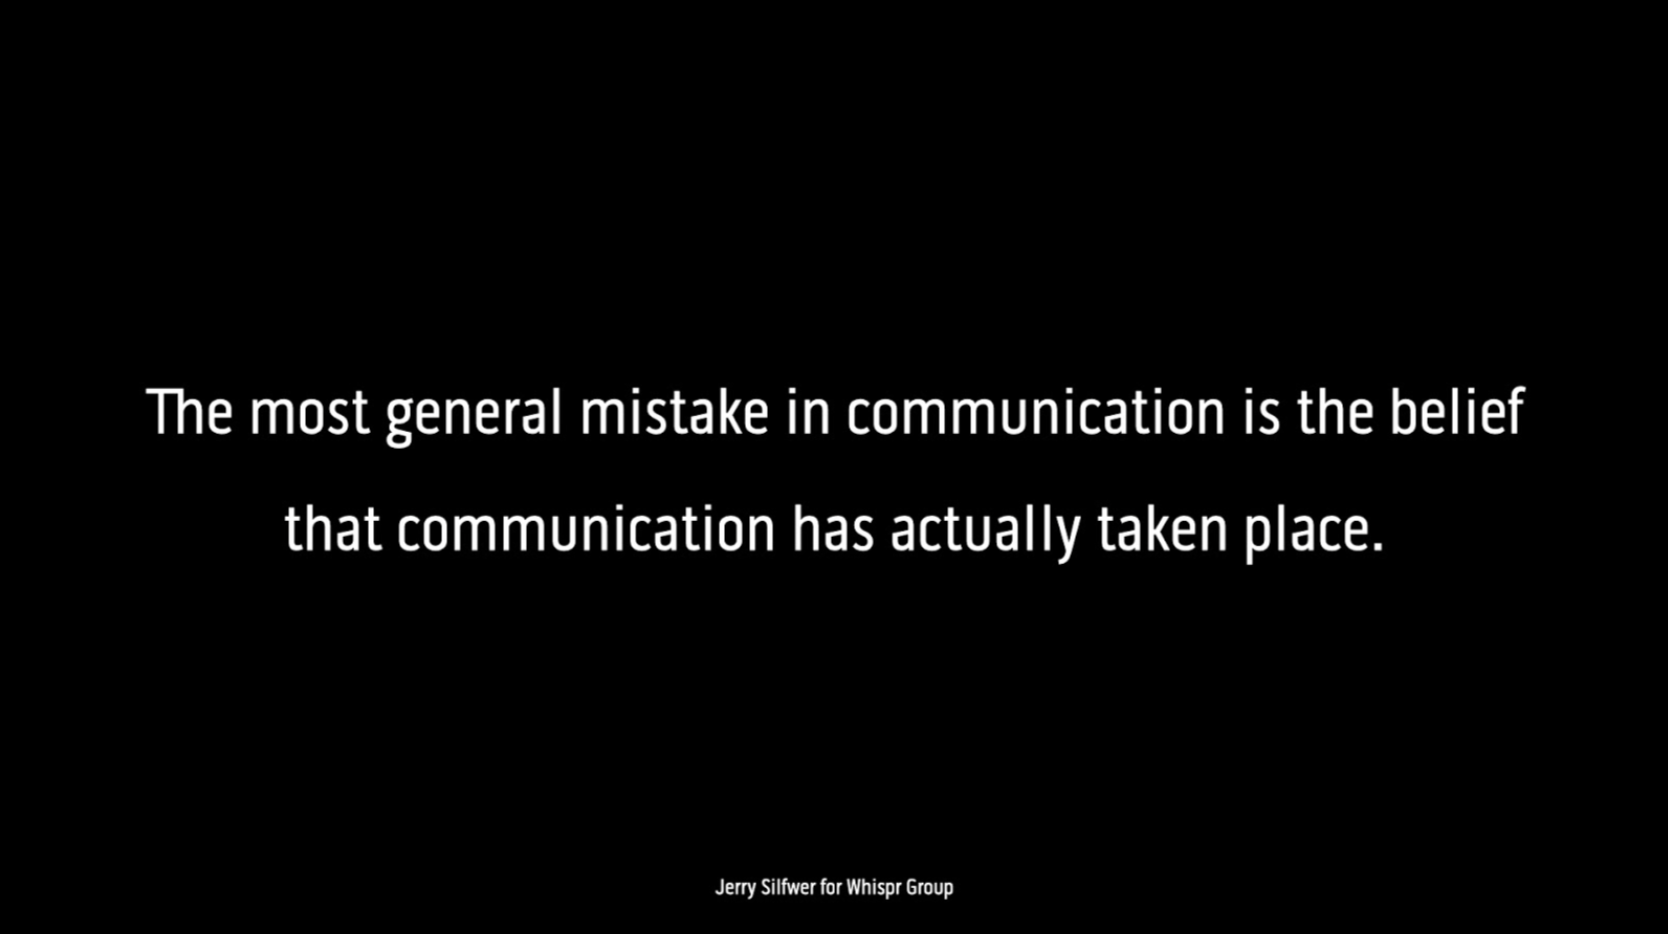 Whispr Group Communication Insights